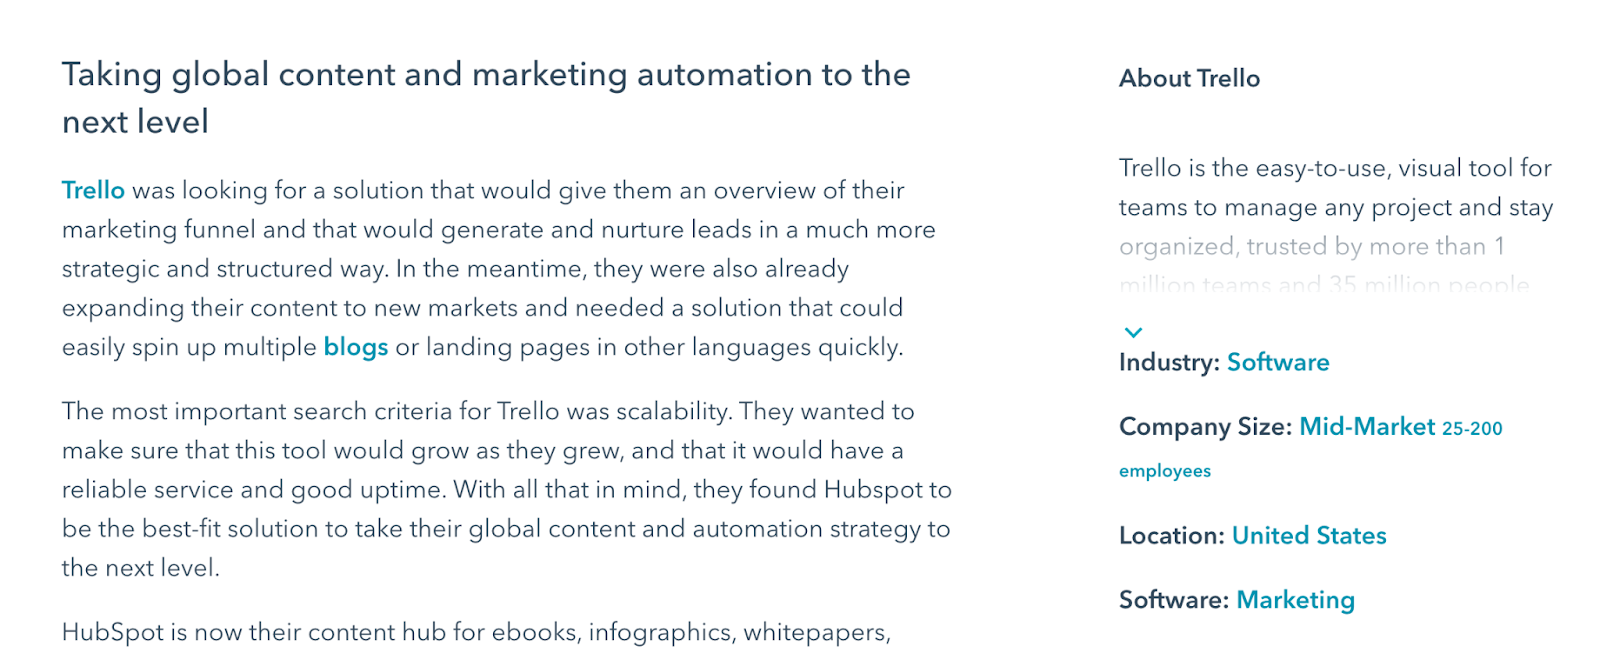 HubSpot goes on to provide some context on their customer Trello